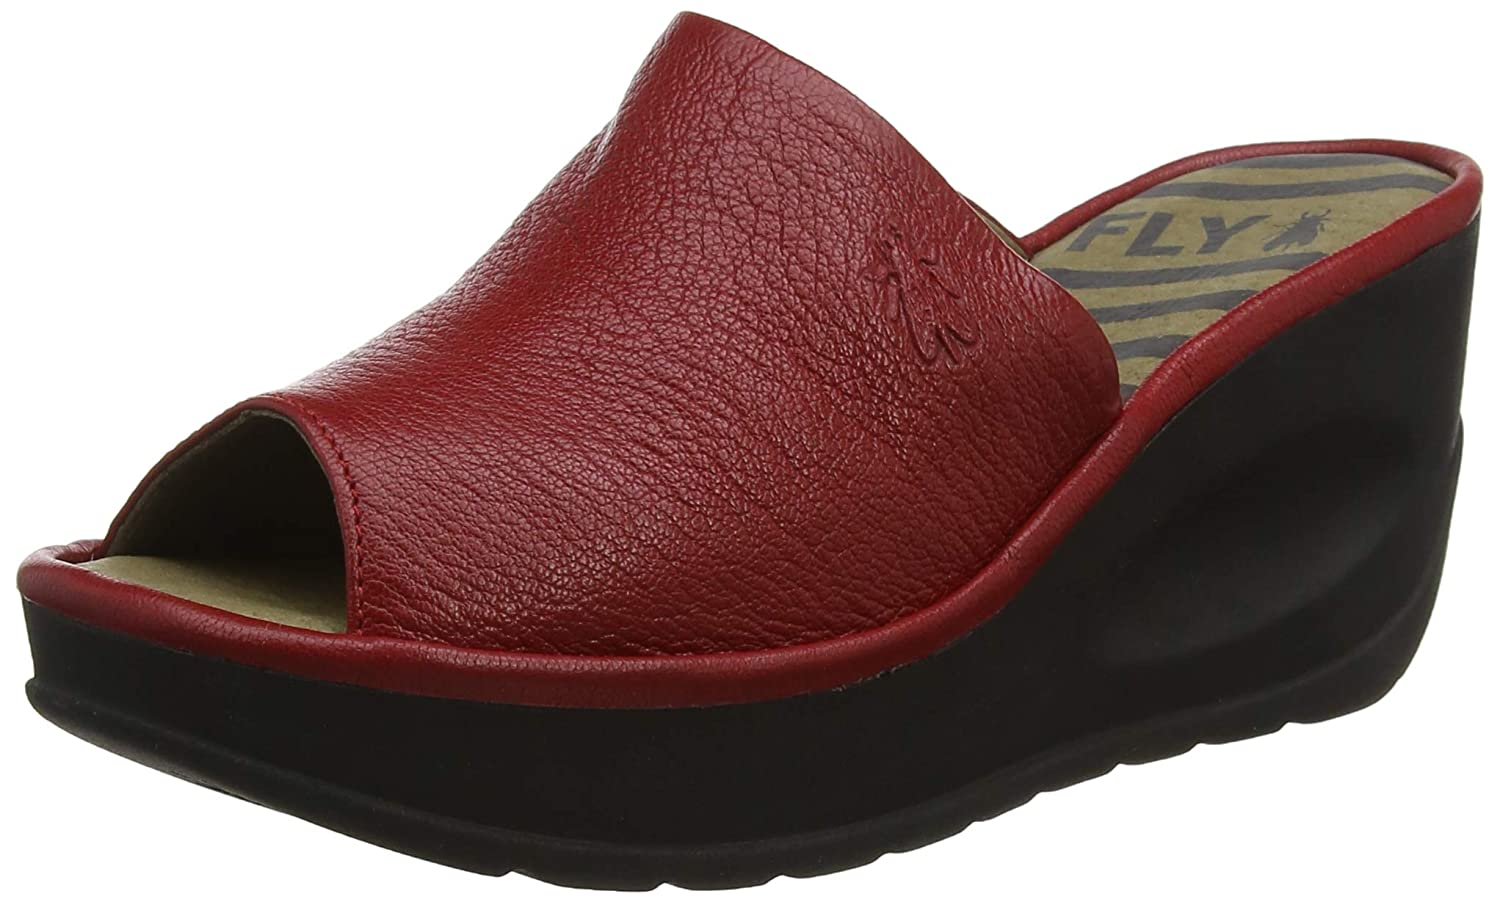 Lipstick Red Fly London Womens Jamb Mousse Summer Leather Wedge Heel Peep Toe Sandals